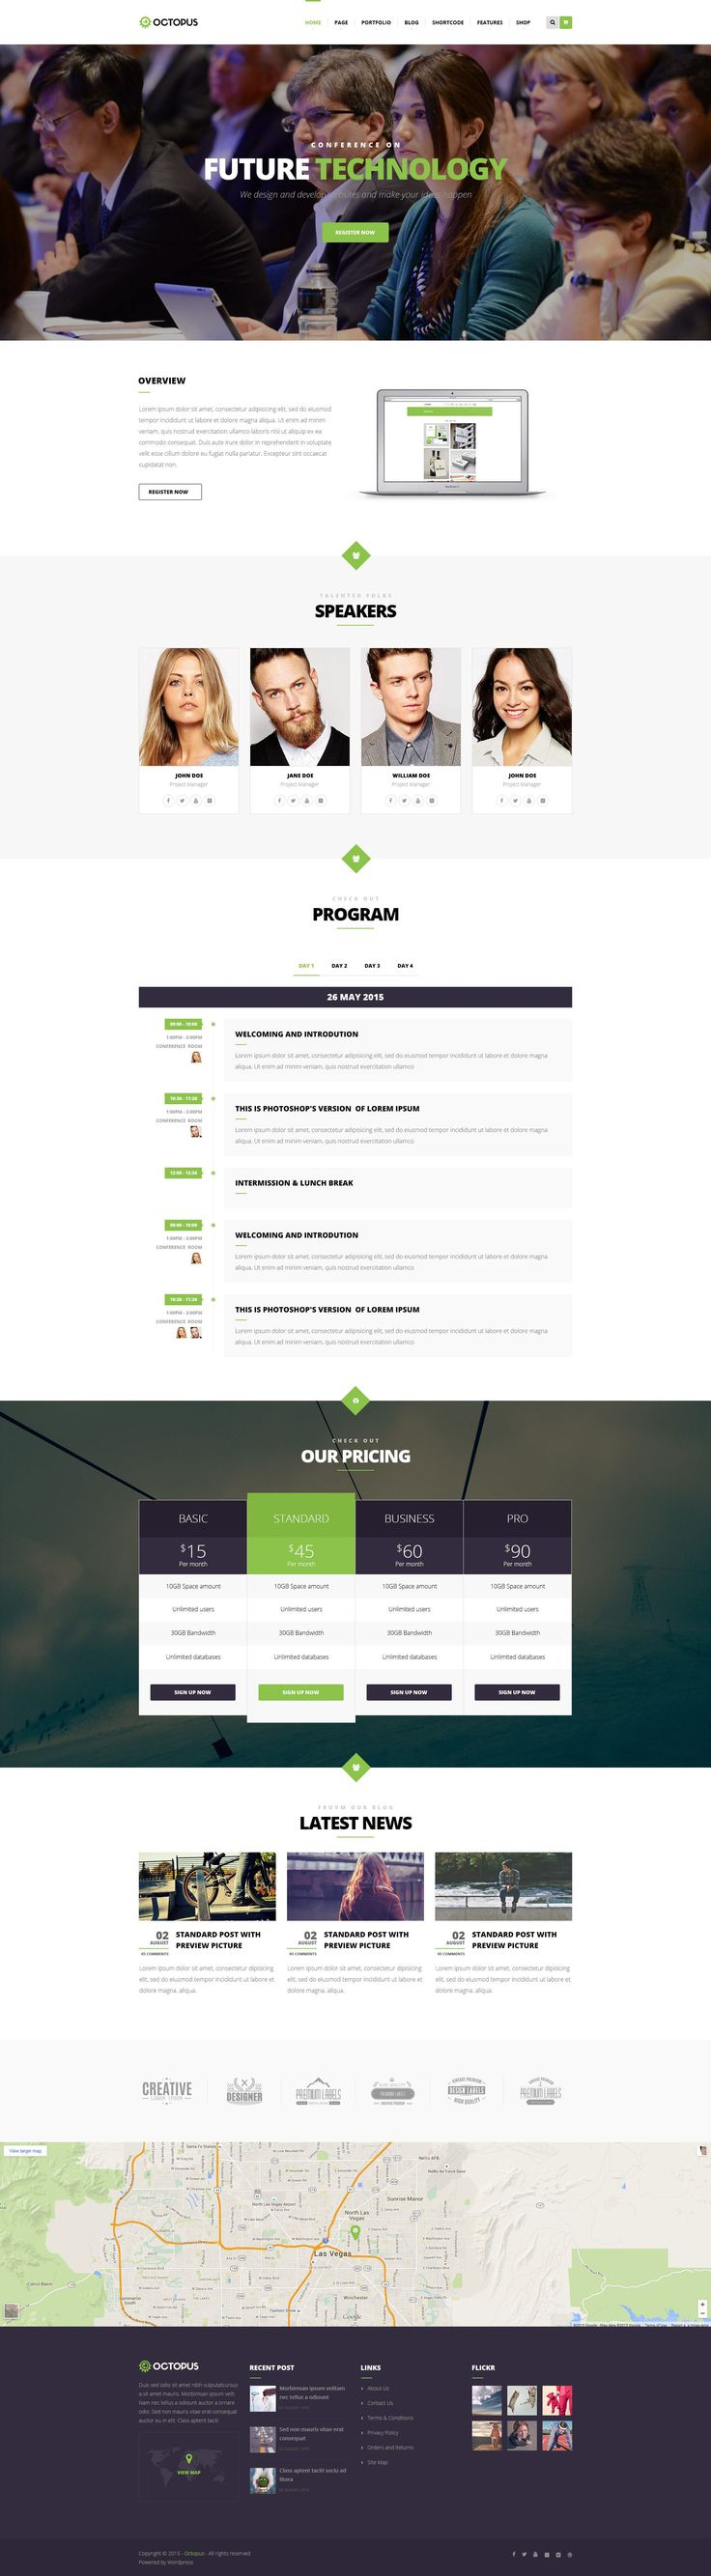 Octopus is a Modern Multipurpose Business WordPress Theme suitable for any type…